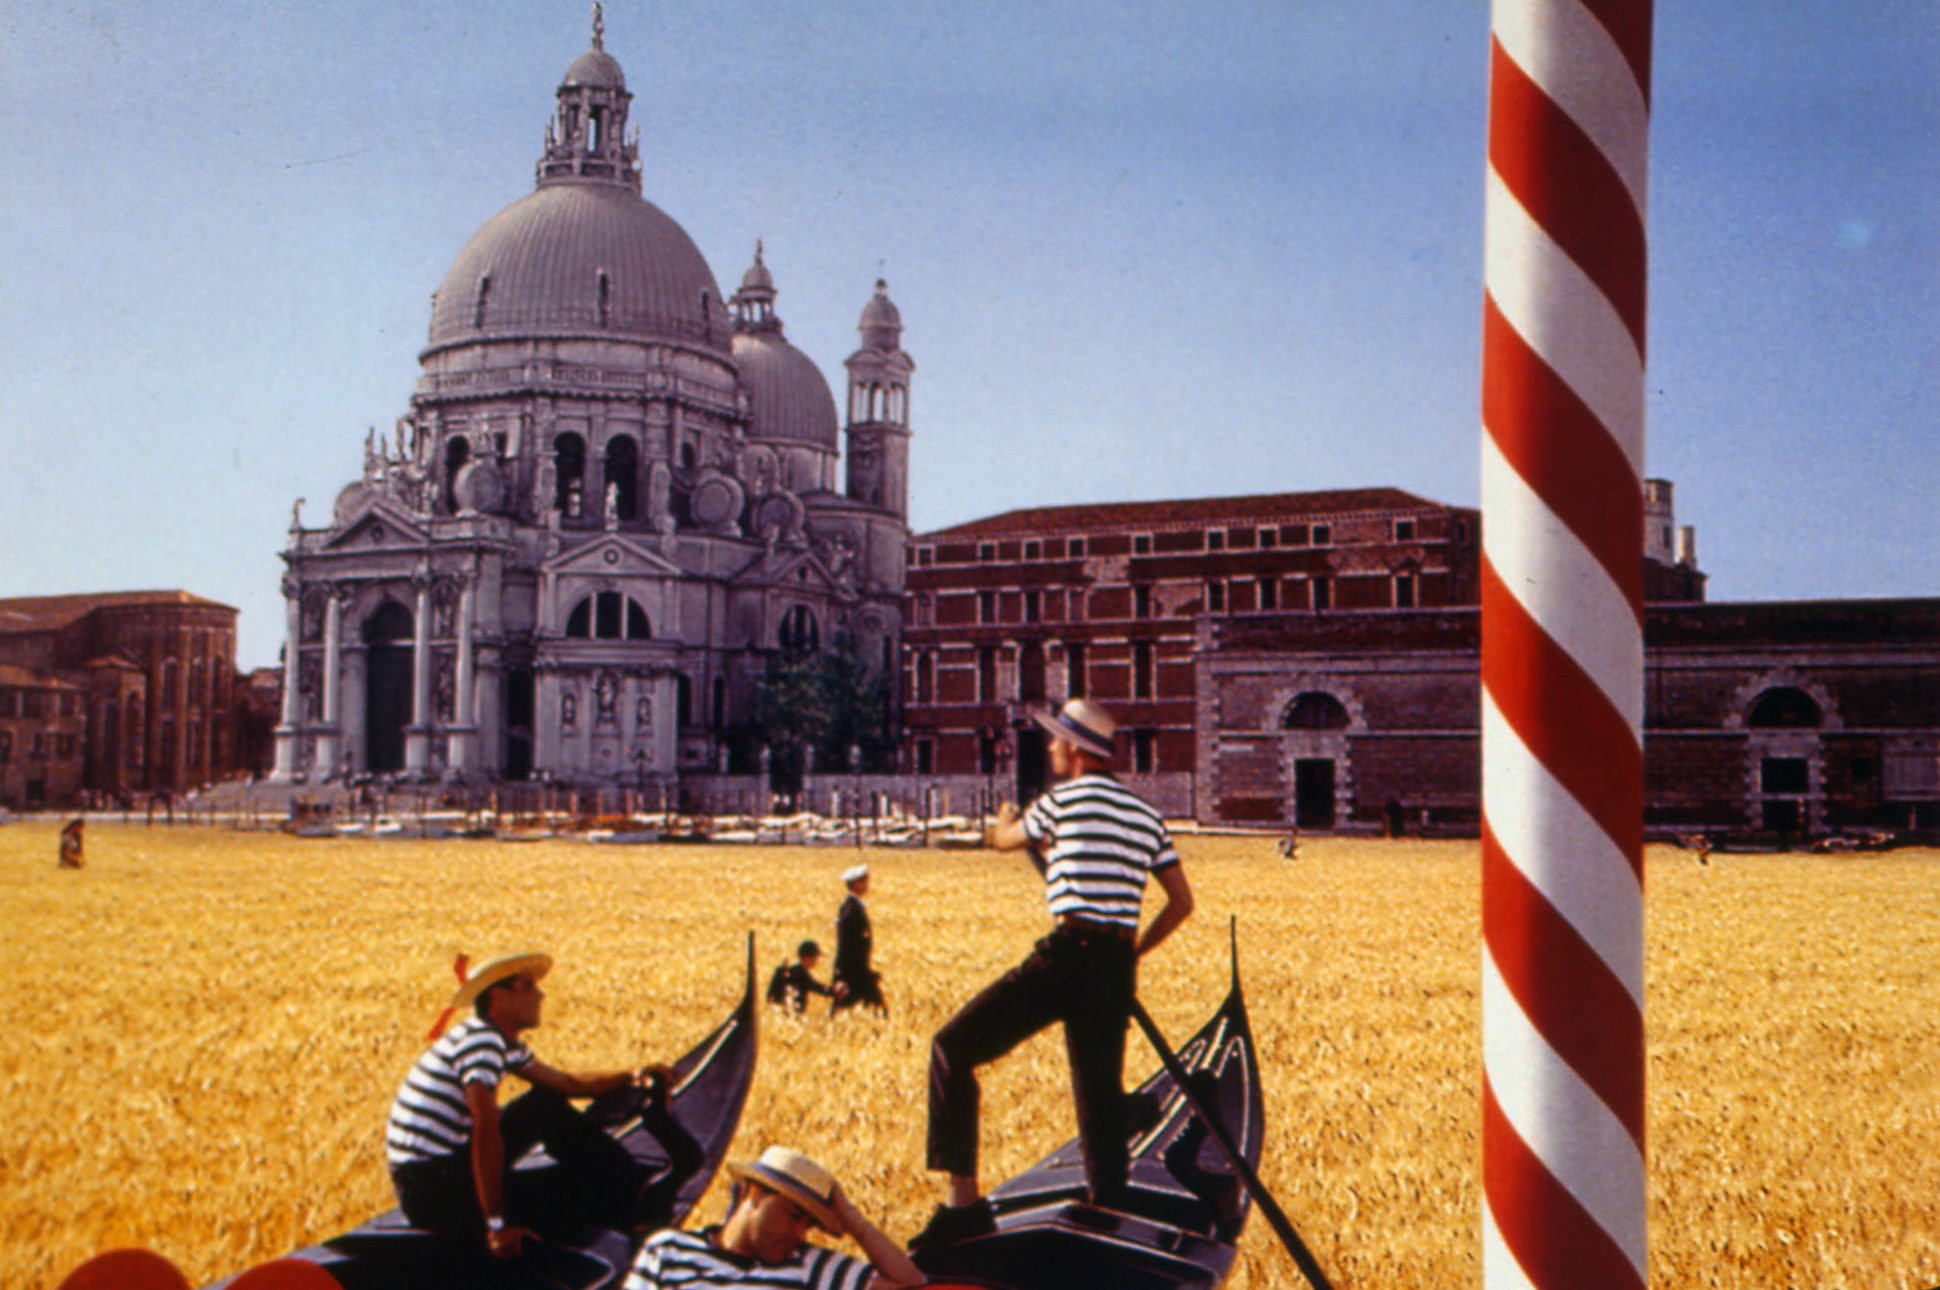 TV advertising - Squares Series, Venice, 1994